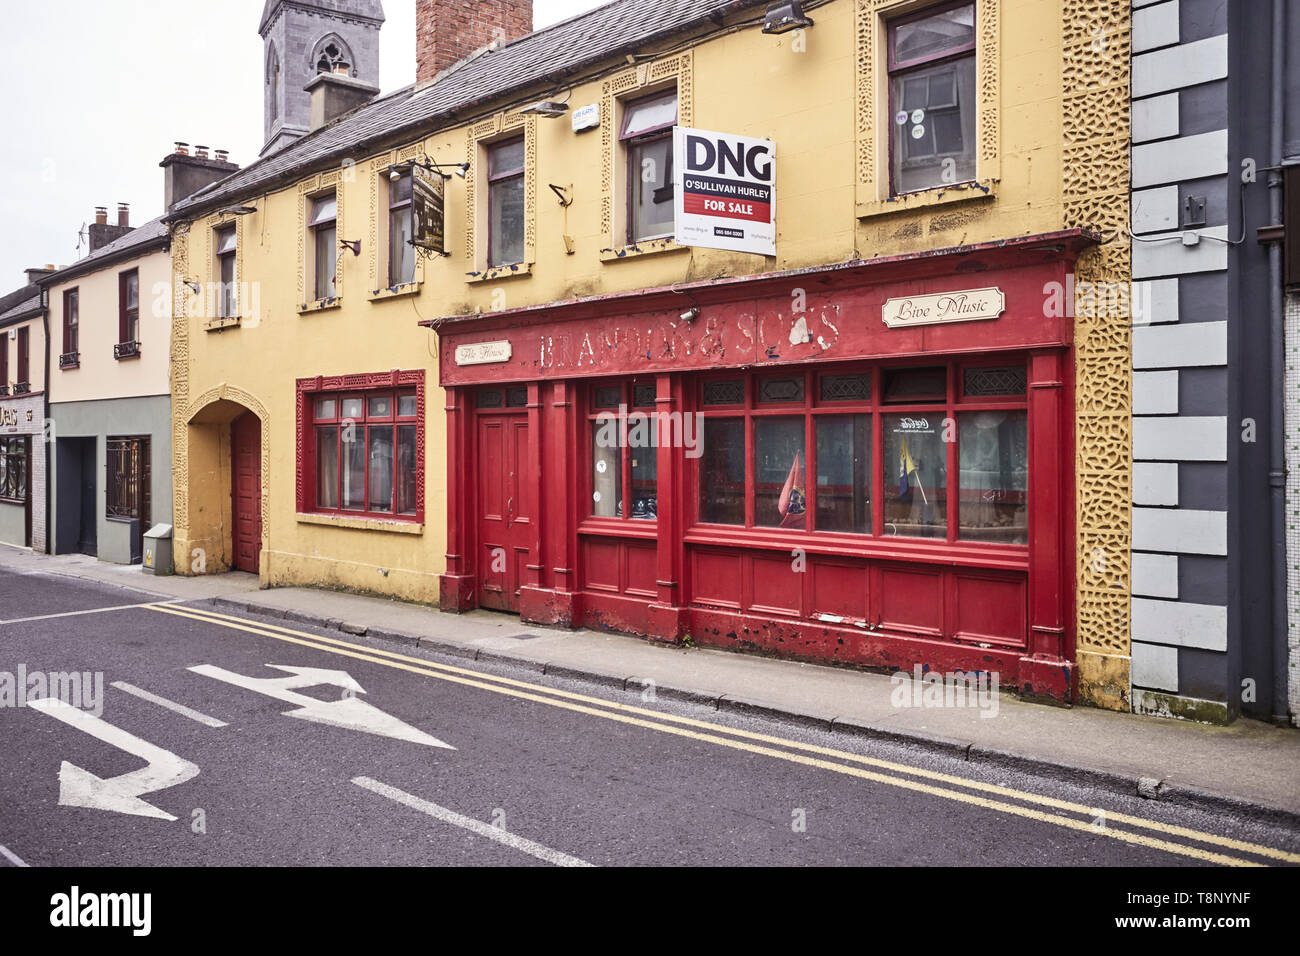 A closed down pub in Ennis, Ireland - Stock Image